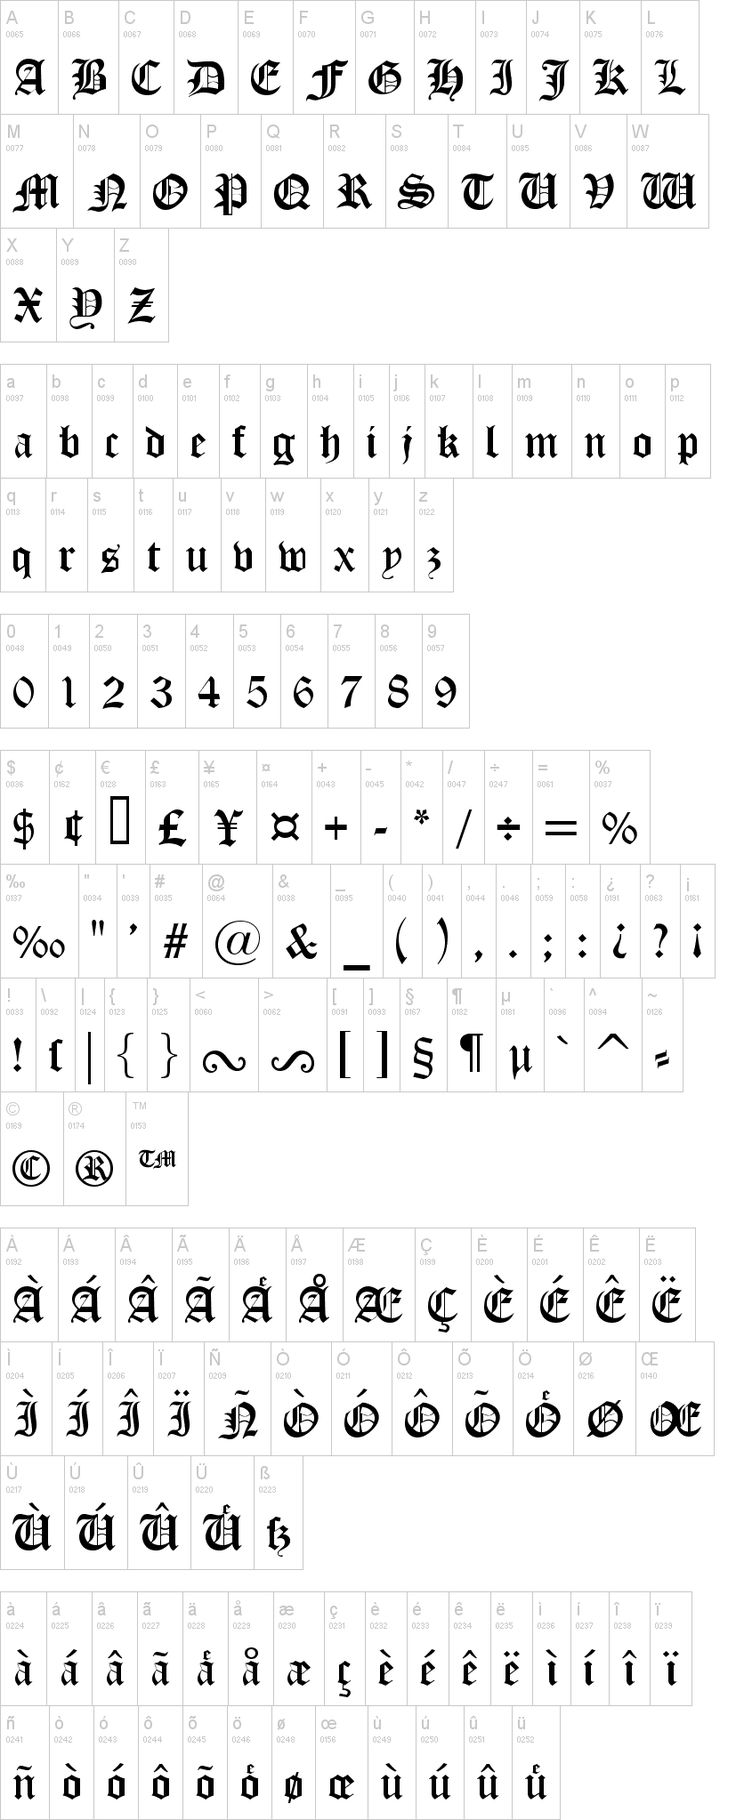 DaFont.com has a variety of beautiful fonts for free. Perfect for all your diy projects.